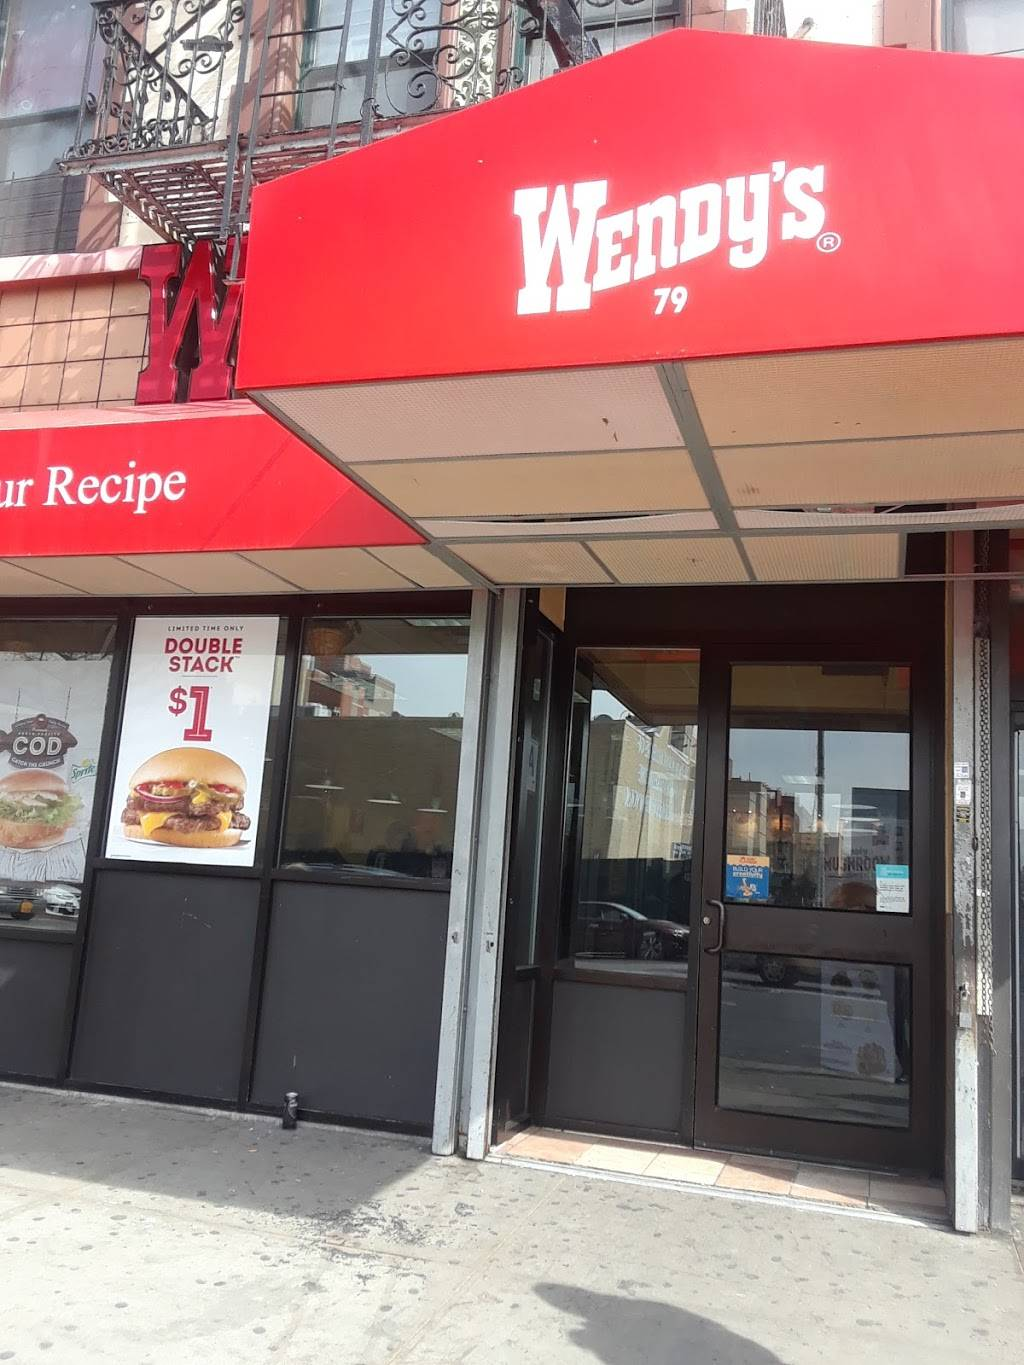 Wendys | restaurant | 79 E 125th St, New York, NY 10035, USA | 6463706737 OR +1 646-370-6737